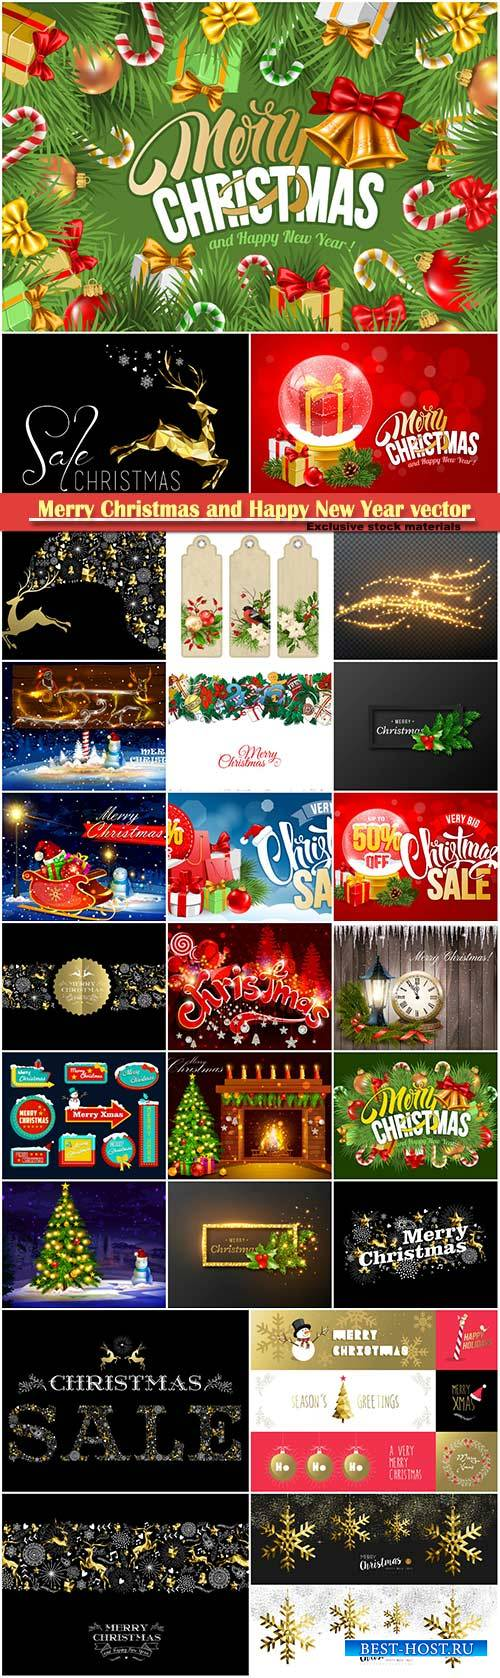 Merry Christmas and Happy New Year vector design # 35